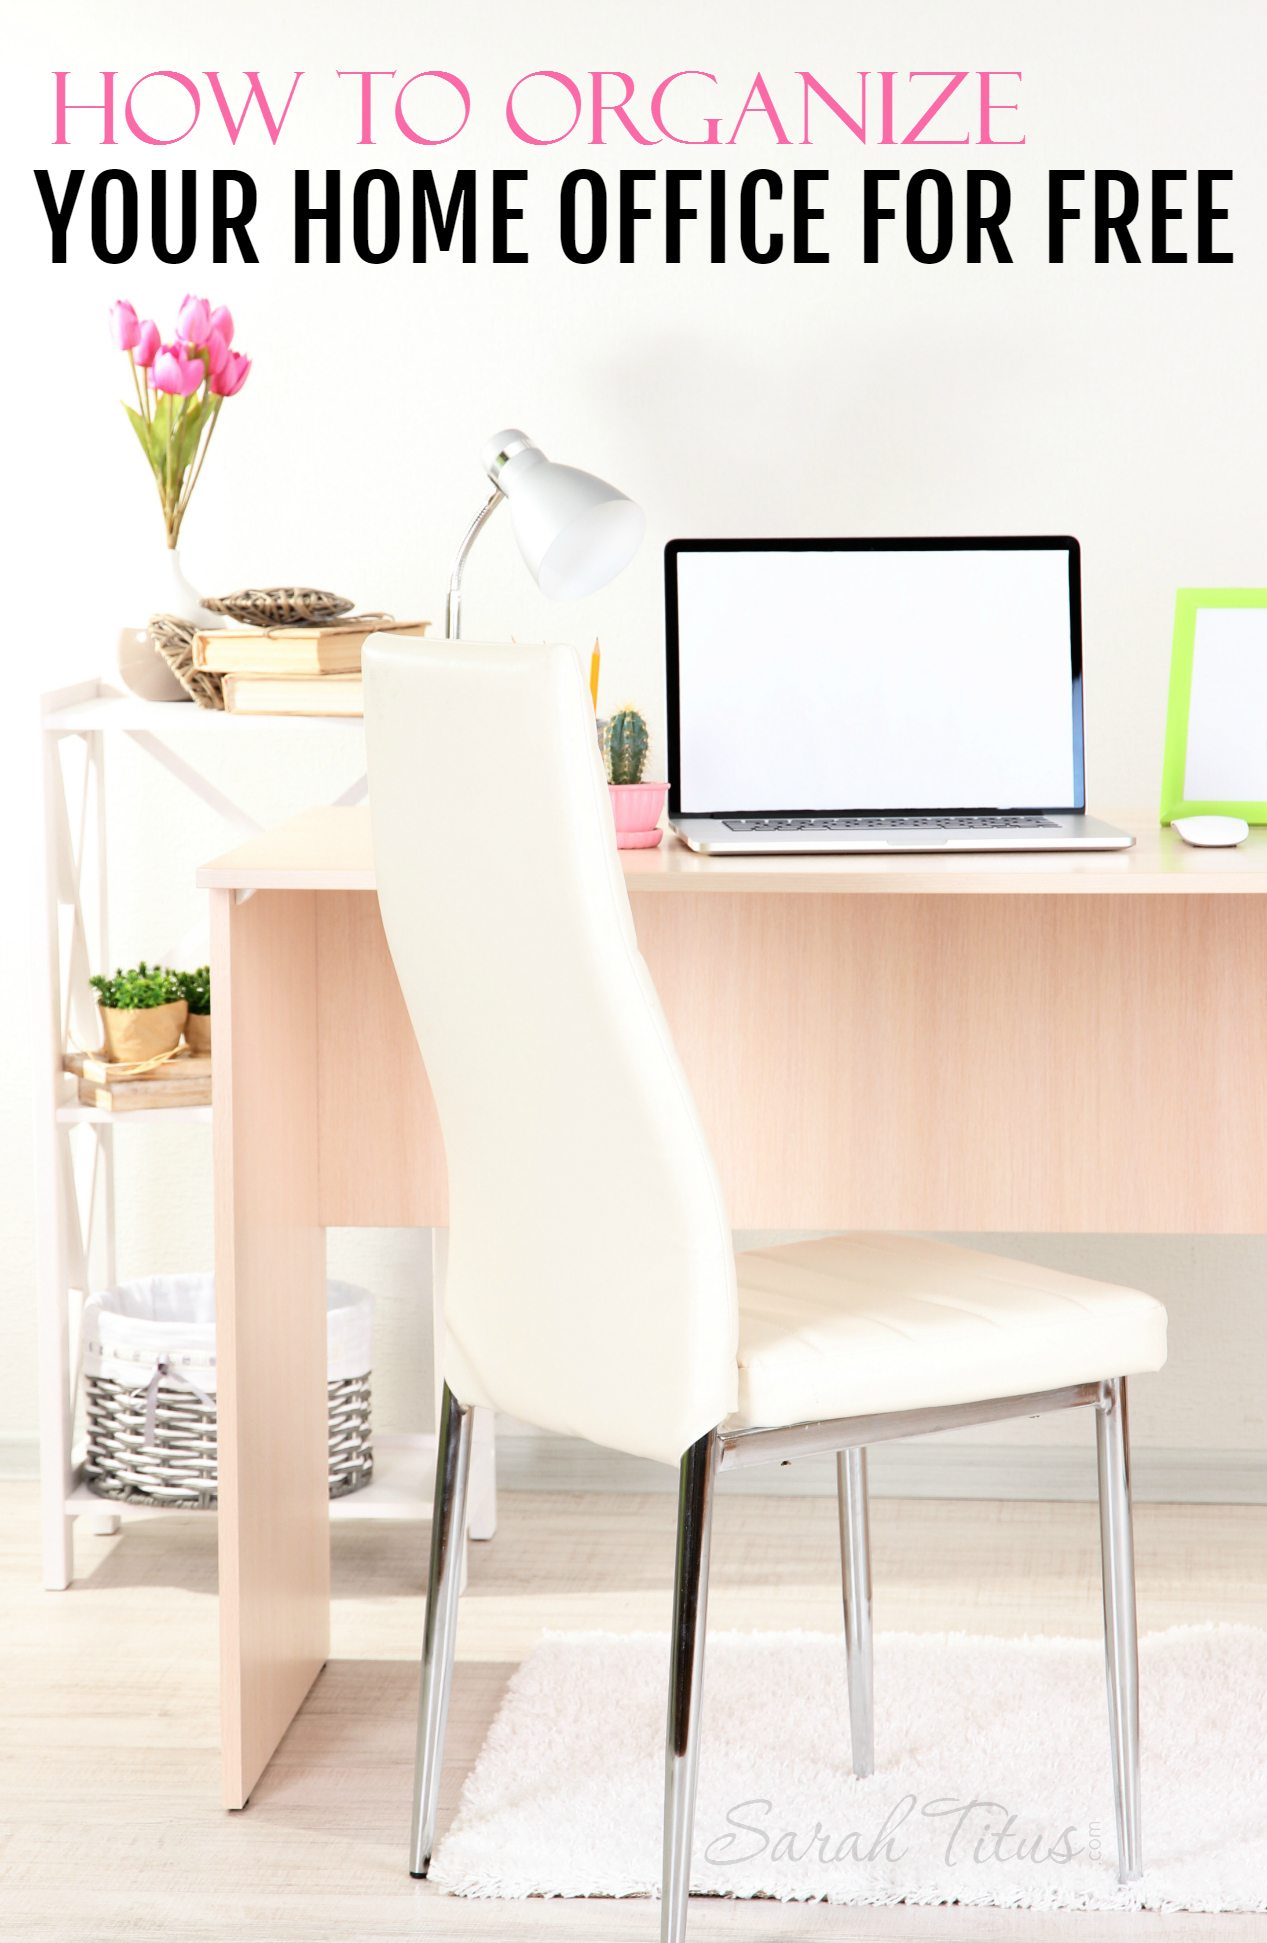 Merveilleux If You Are Like Many People, Your Home Office Can Quickly Spiral Into A  Disorganized